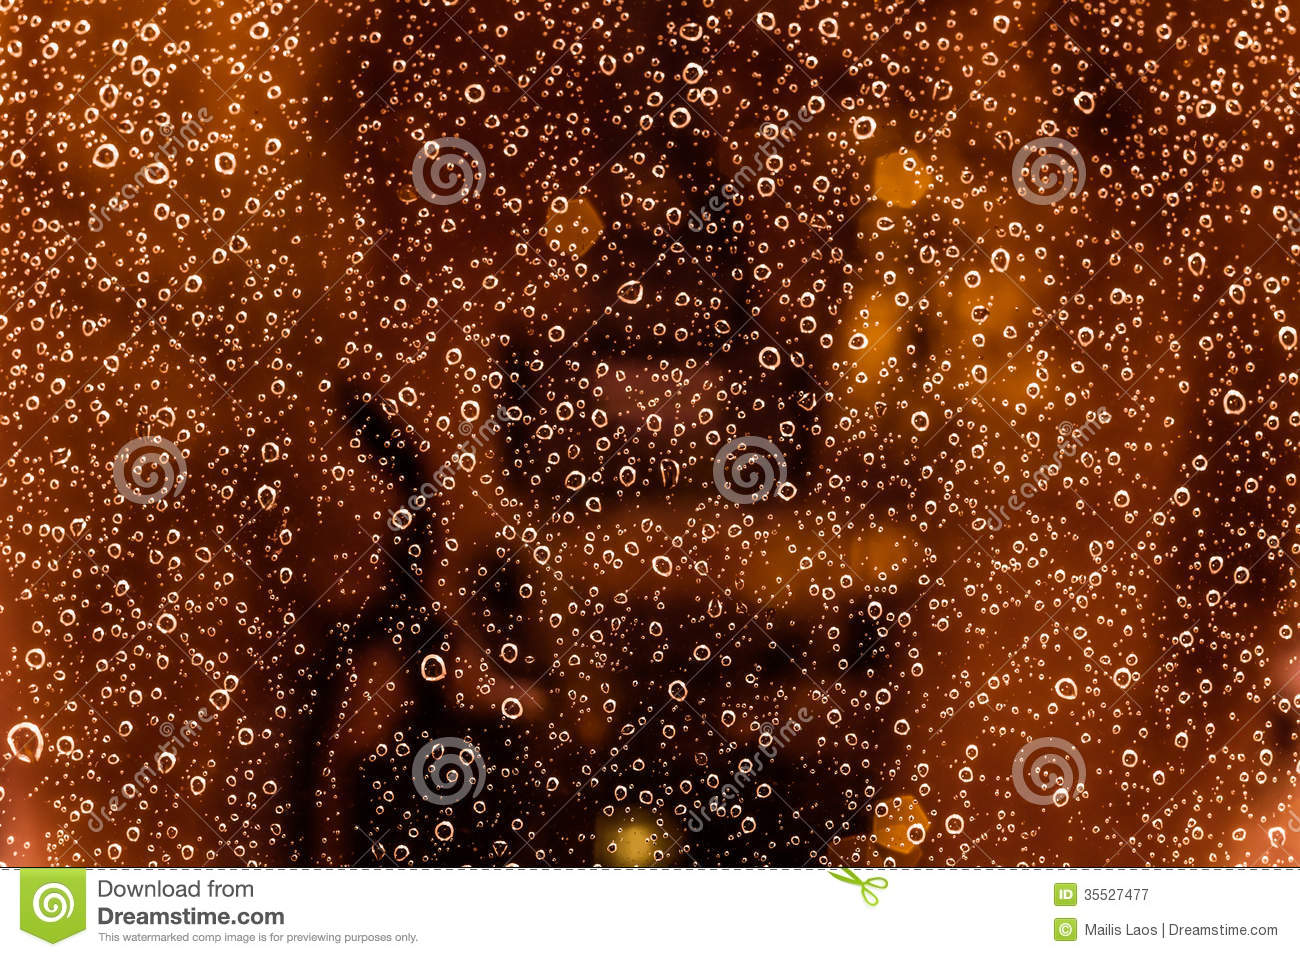 Download Waterdrops Background stock image. Image of drop, dots - 35527477